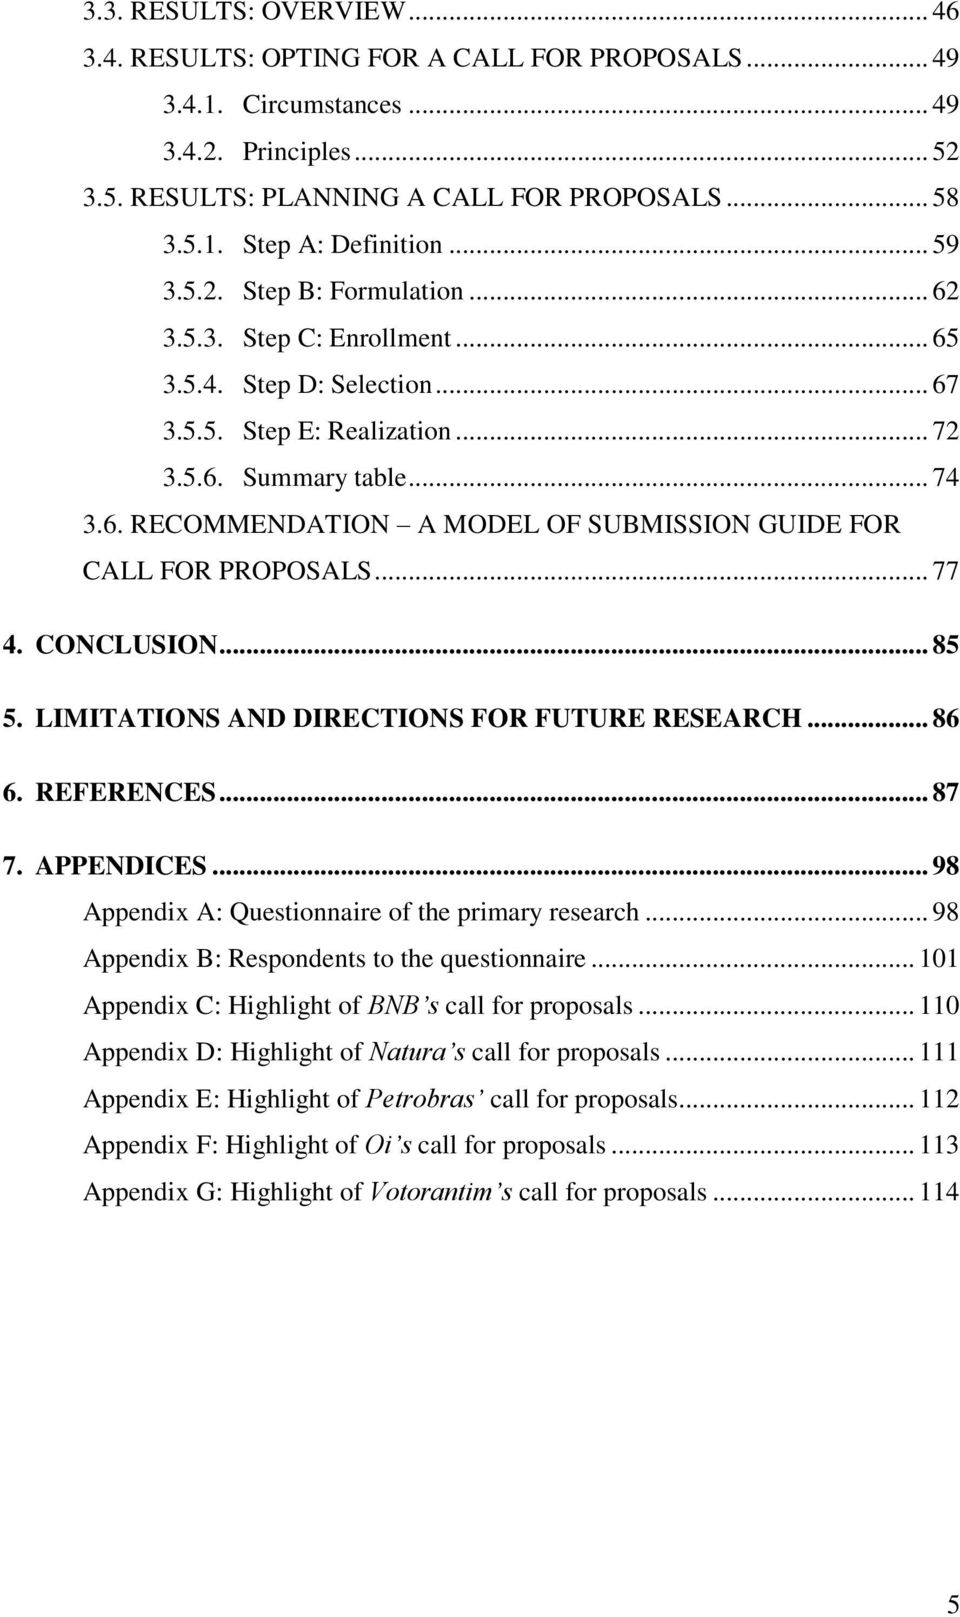 .. 77 4. CONCLUSION... 85 5. LIMITATIONS AND DIRECTIONS FOR FUTURE RESEARCH... 86 6. REFERENCES... 87 7. APPENDICES... 98 Appendix A: Questionnaire of the primary research.